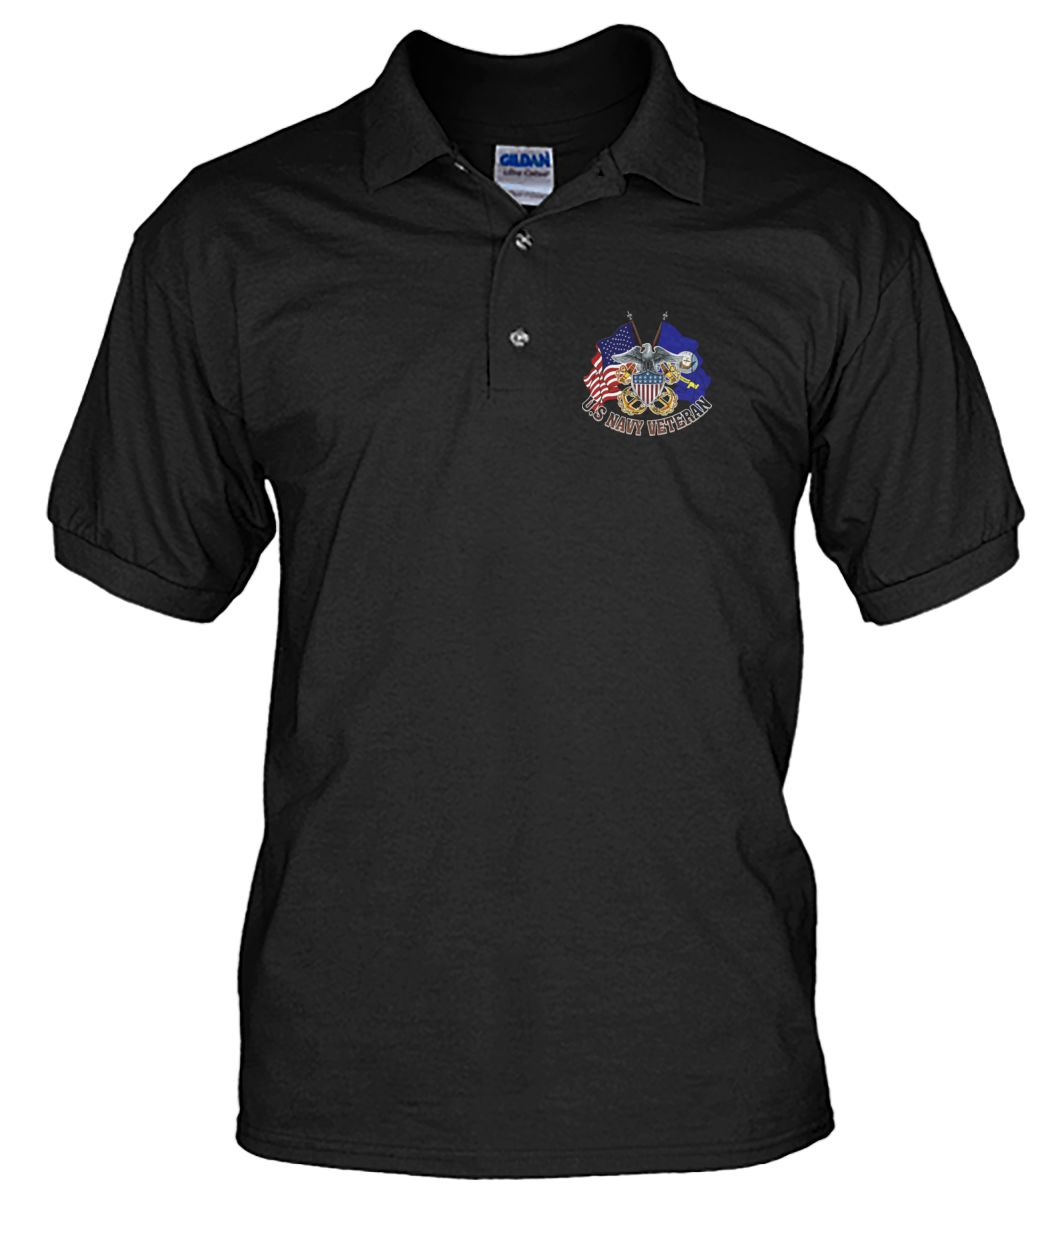 I will live by this oath until the day I die … U.S Navy veteran? men's polo wp